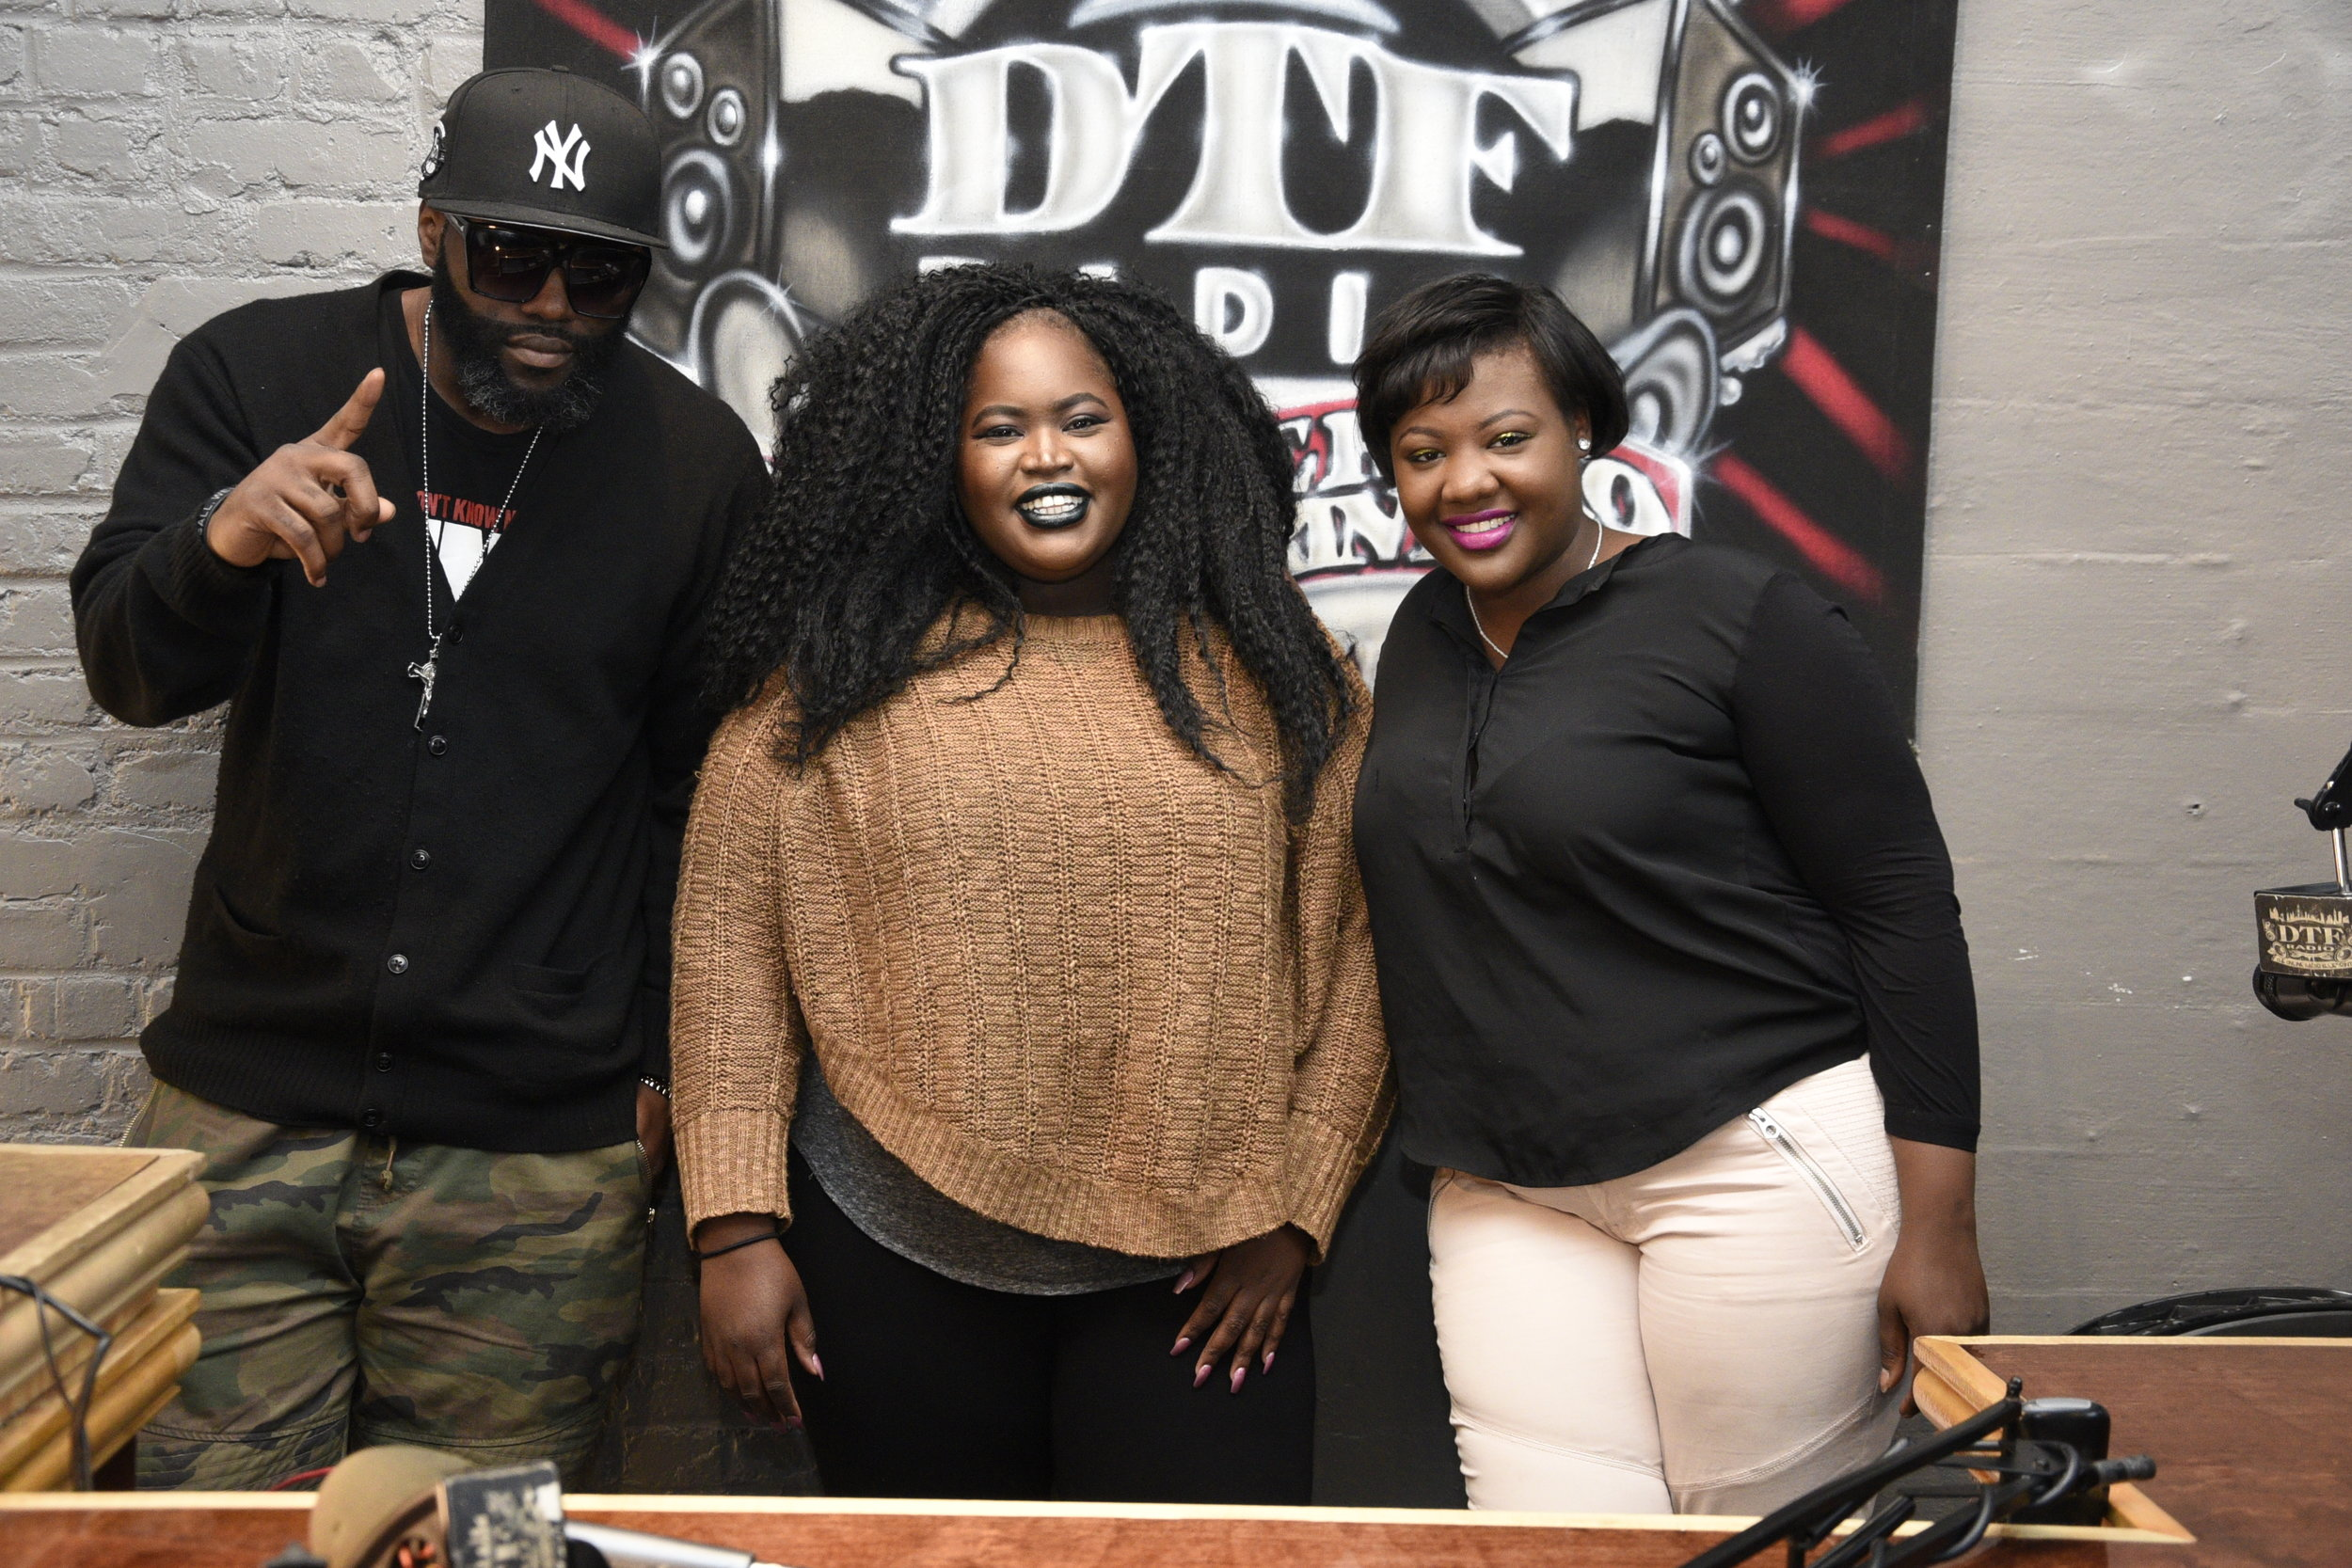 2016 Interview with #RichOffLifeTV on DTFRadio